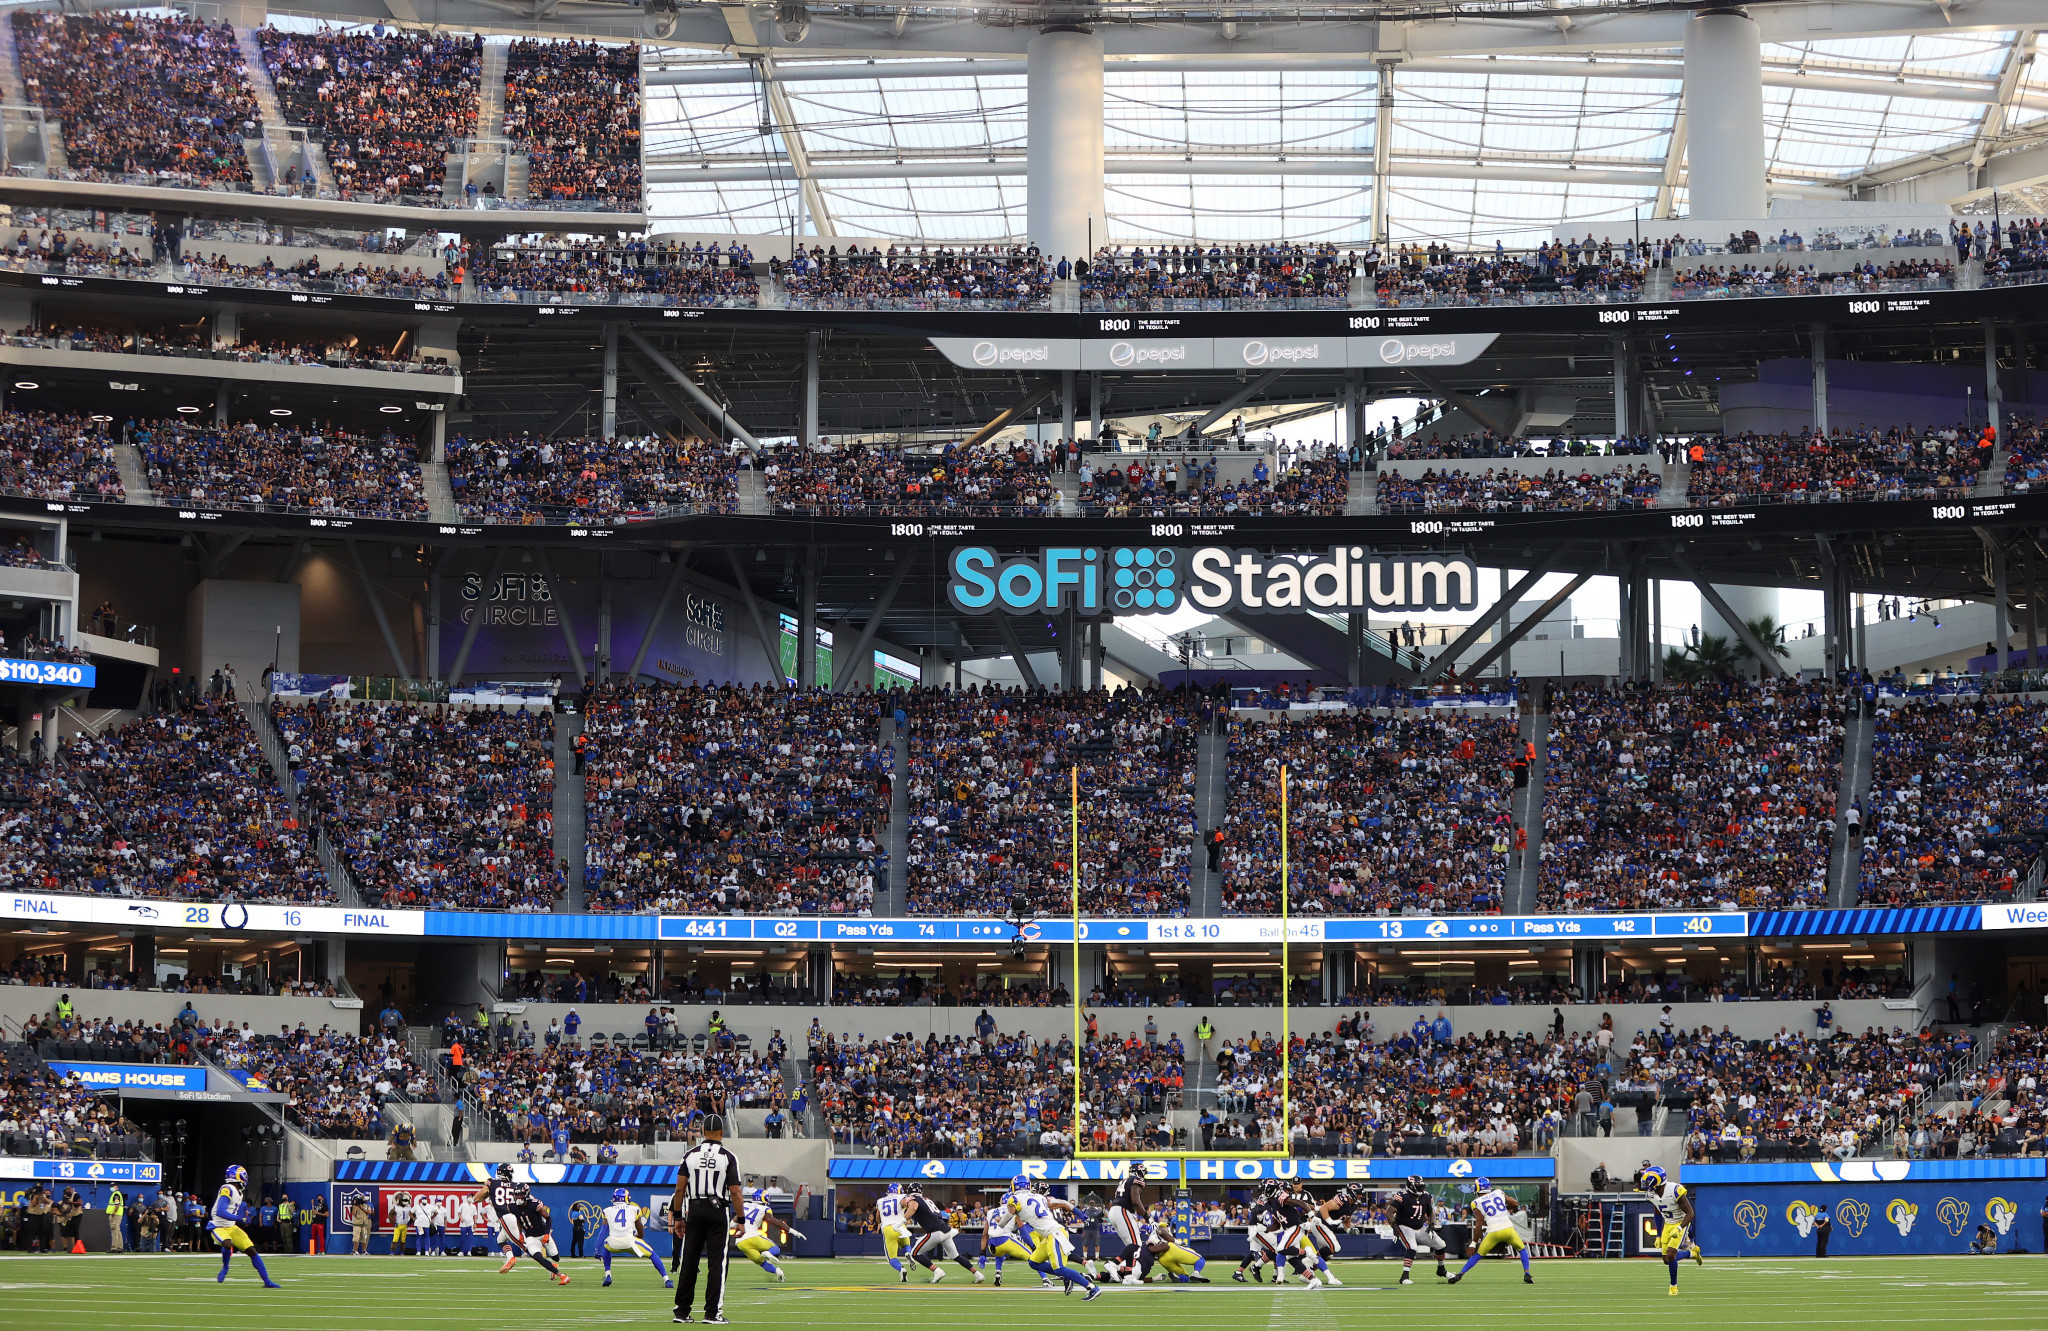 For the first time in the stadium's history, the Los Angeles Rams played in front of a raucous and full SoFi Stadium in their 2021 season opener against the Chicago Bears ©Getty Images